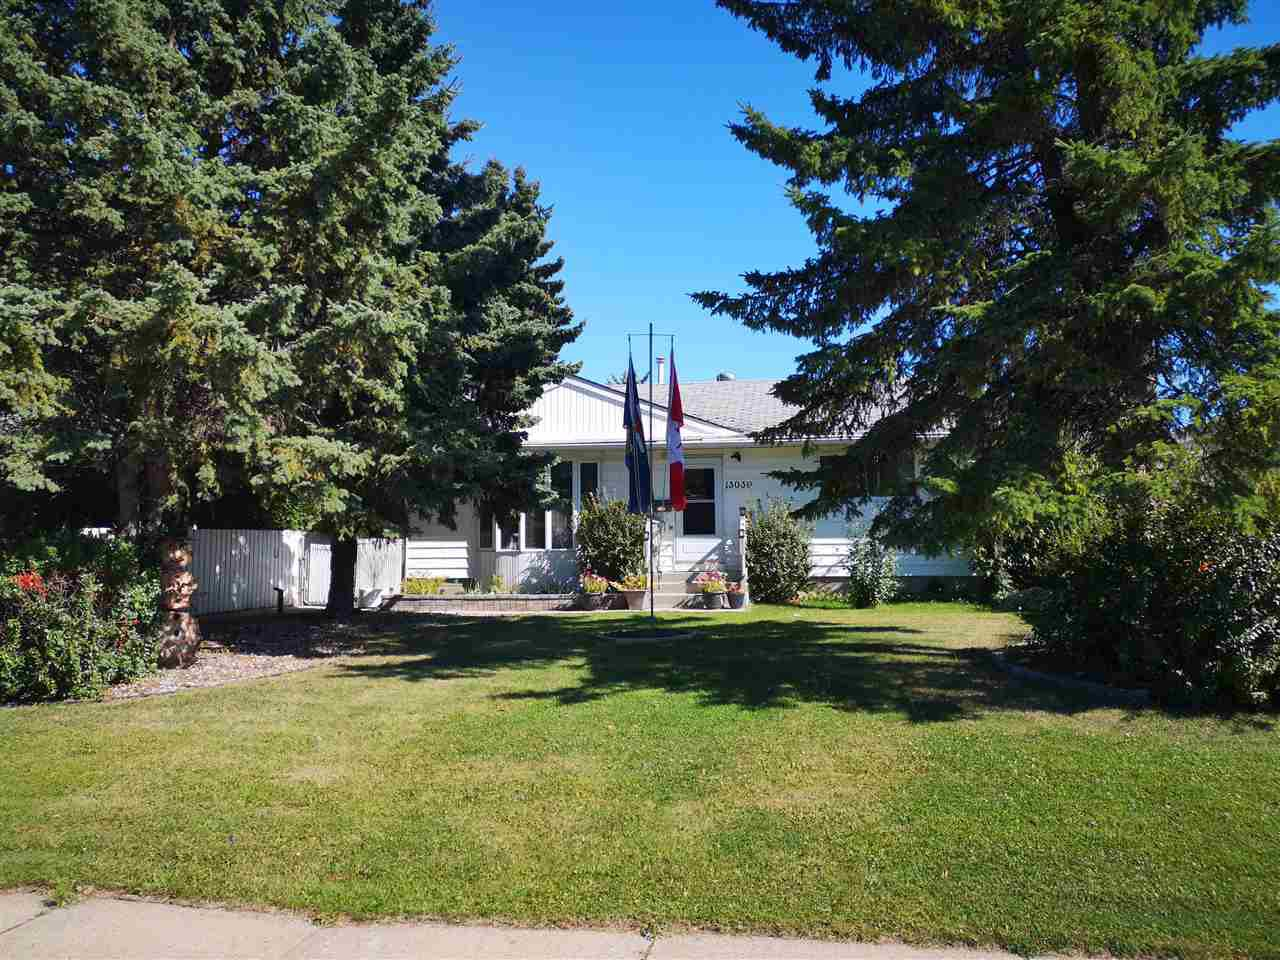 Main Photo: 13039 123 Street in Edmonton: Zone 01 House for sale : MLS®# E4213838